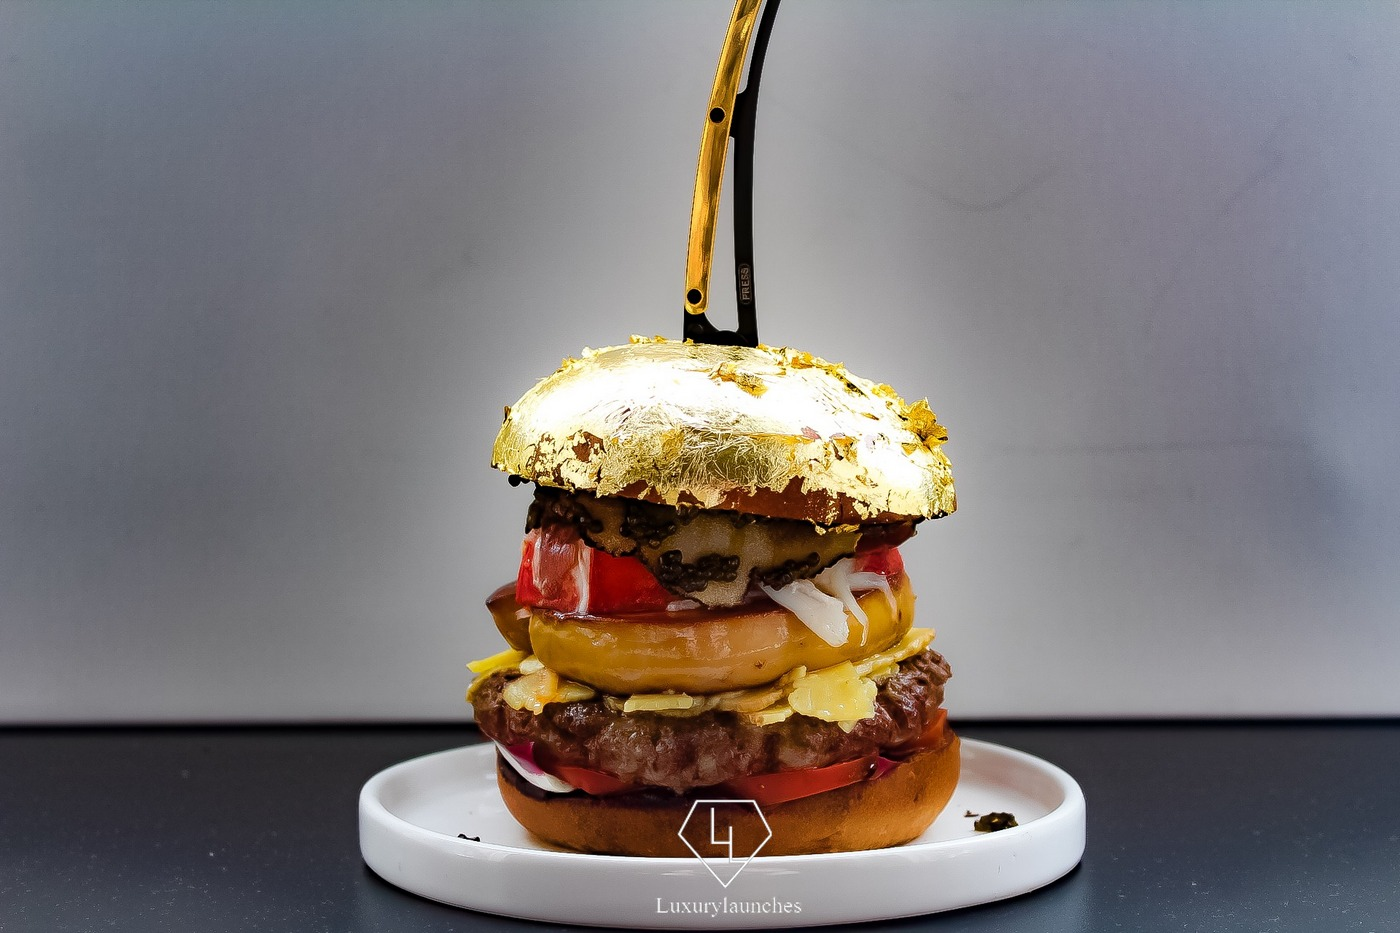 Not your average Big Mac - These are the most expensive hamburgers ever